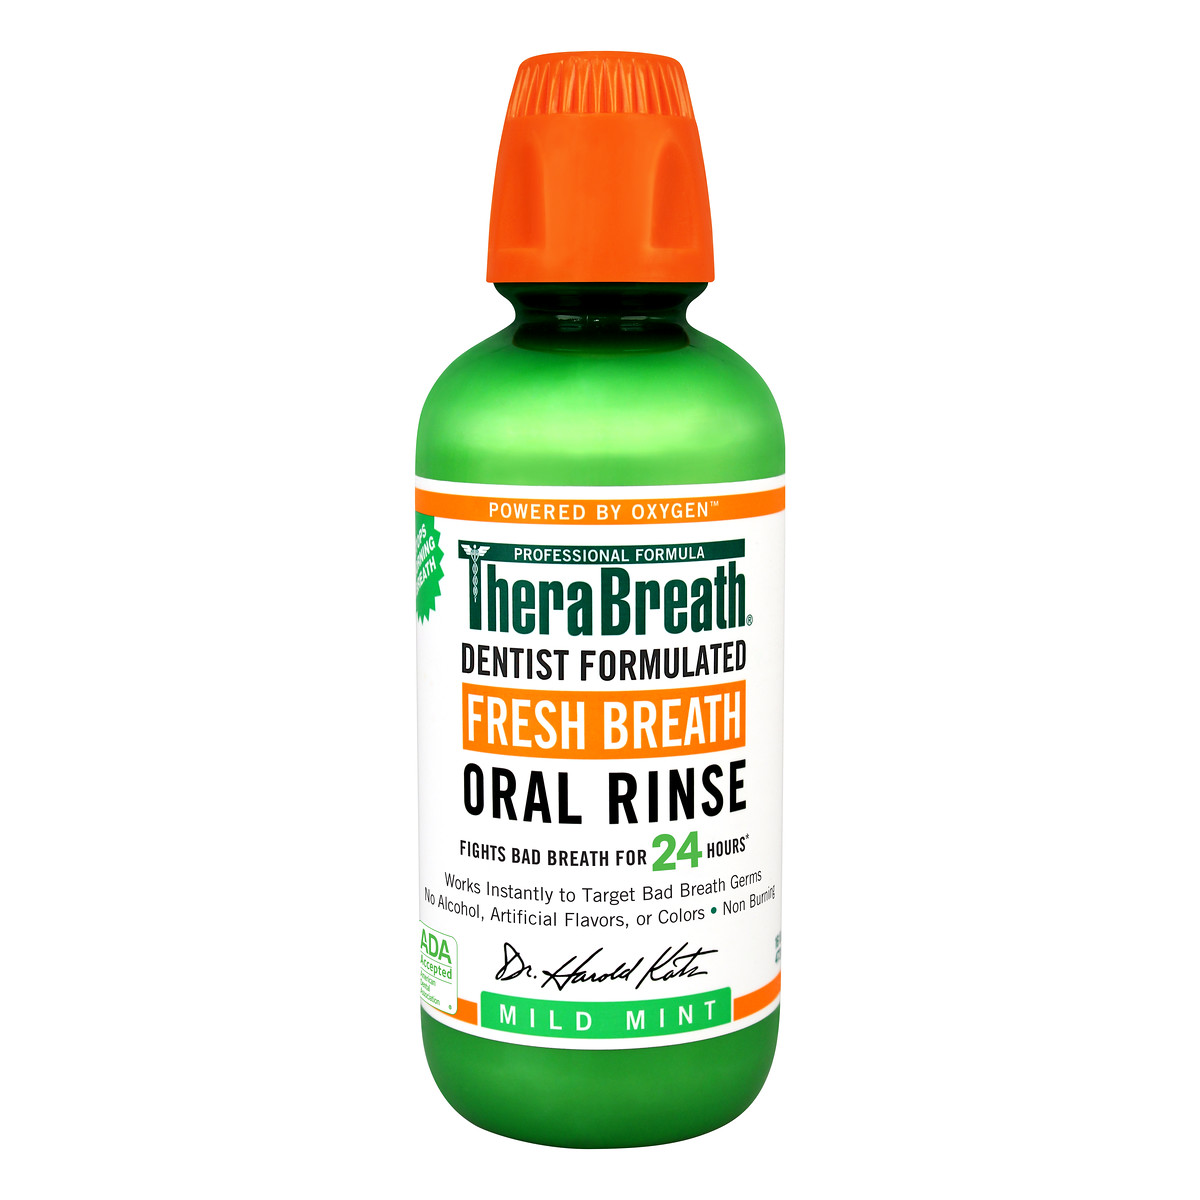 picture regarding Therabreath Coupons Printable titled TheraBreath Clean Breath Oral Rinse, Gentle Mint, 16.0 FL OZ